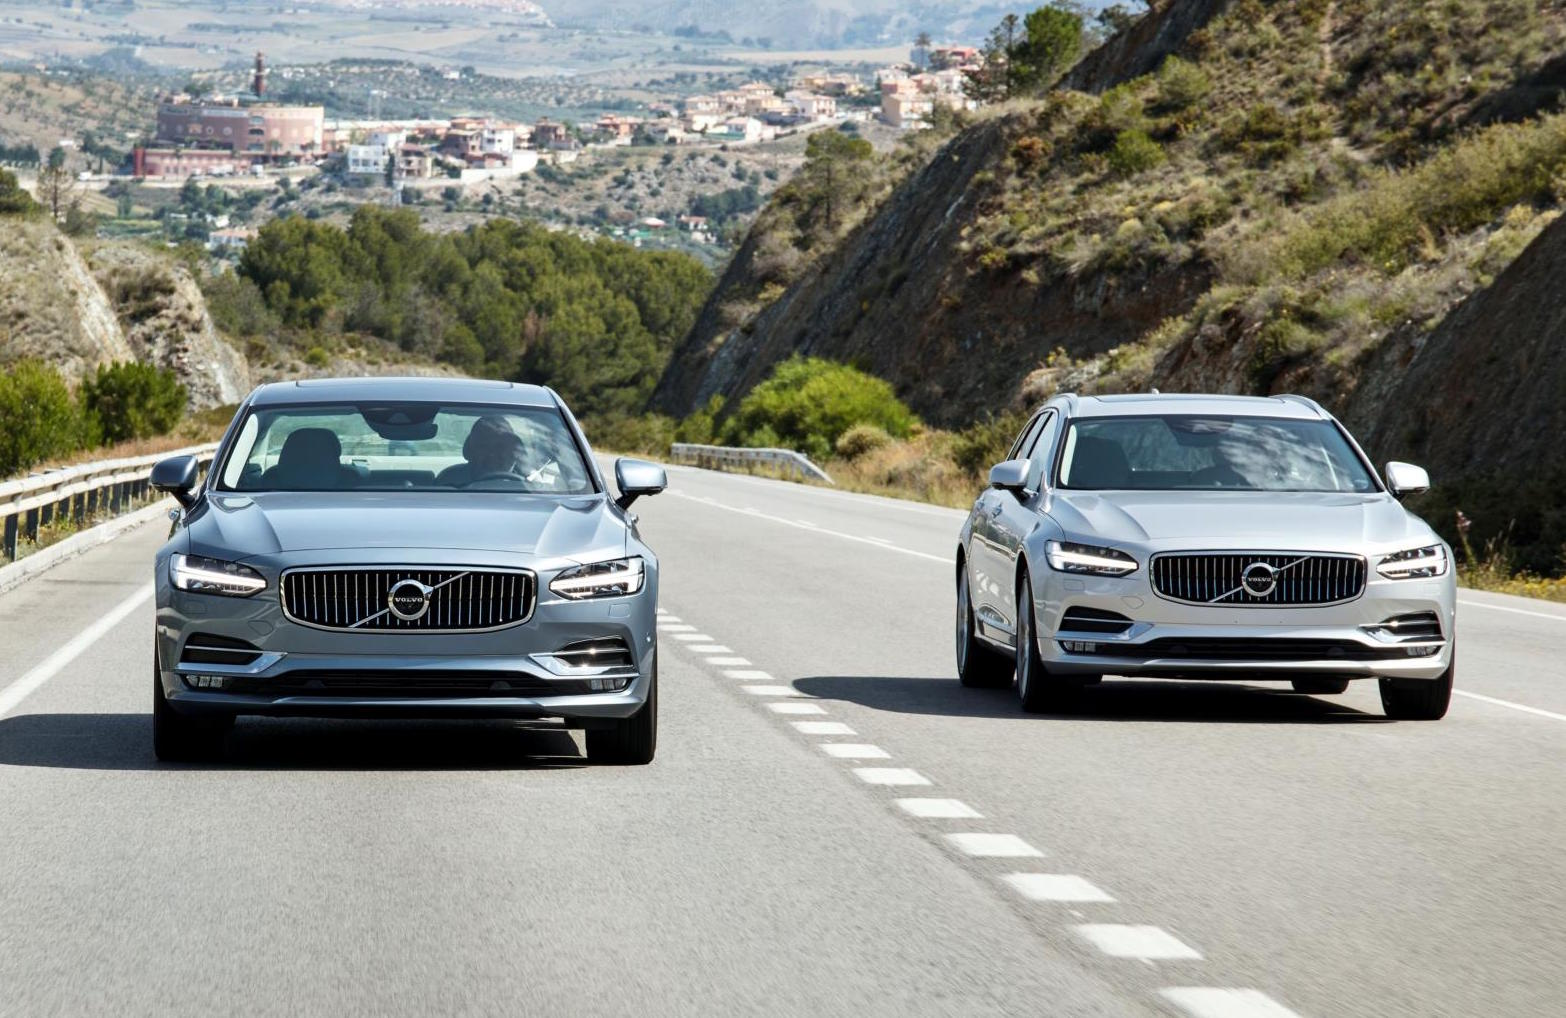 small volvo review and but quite stylish safe cars models easy drive trans